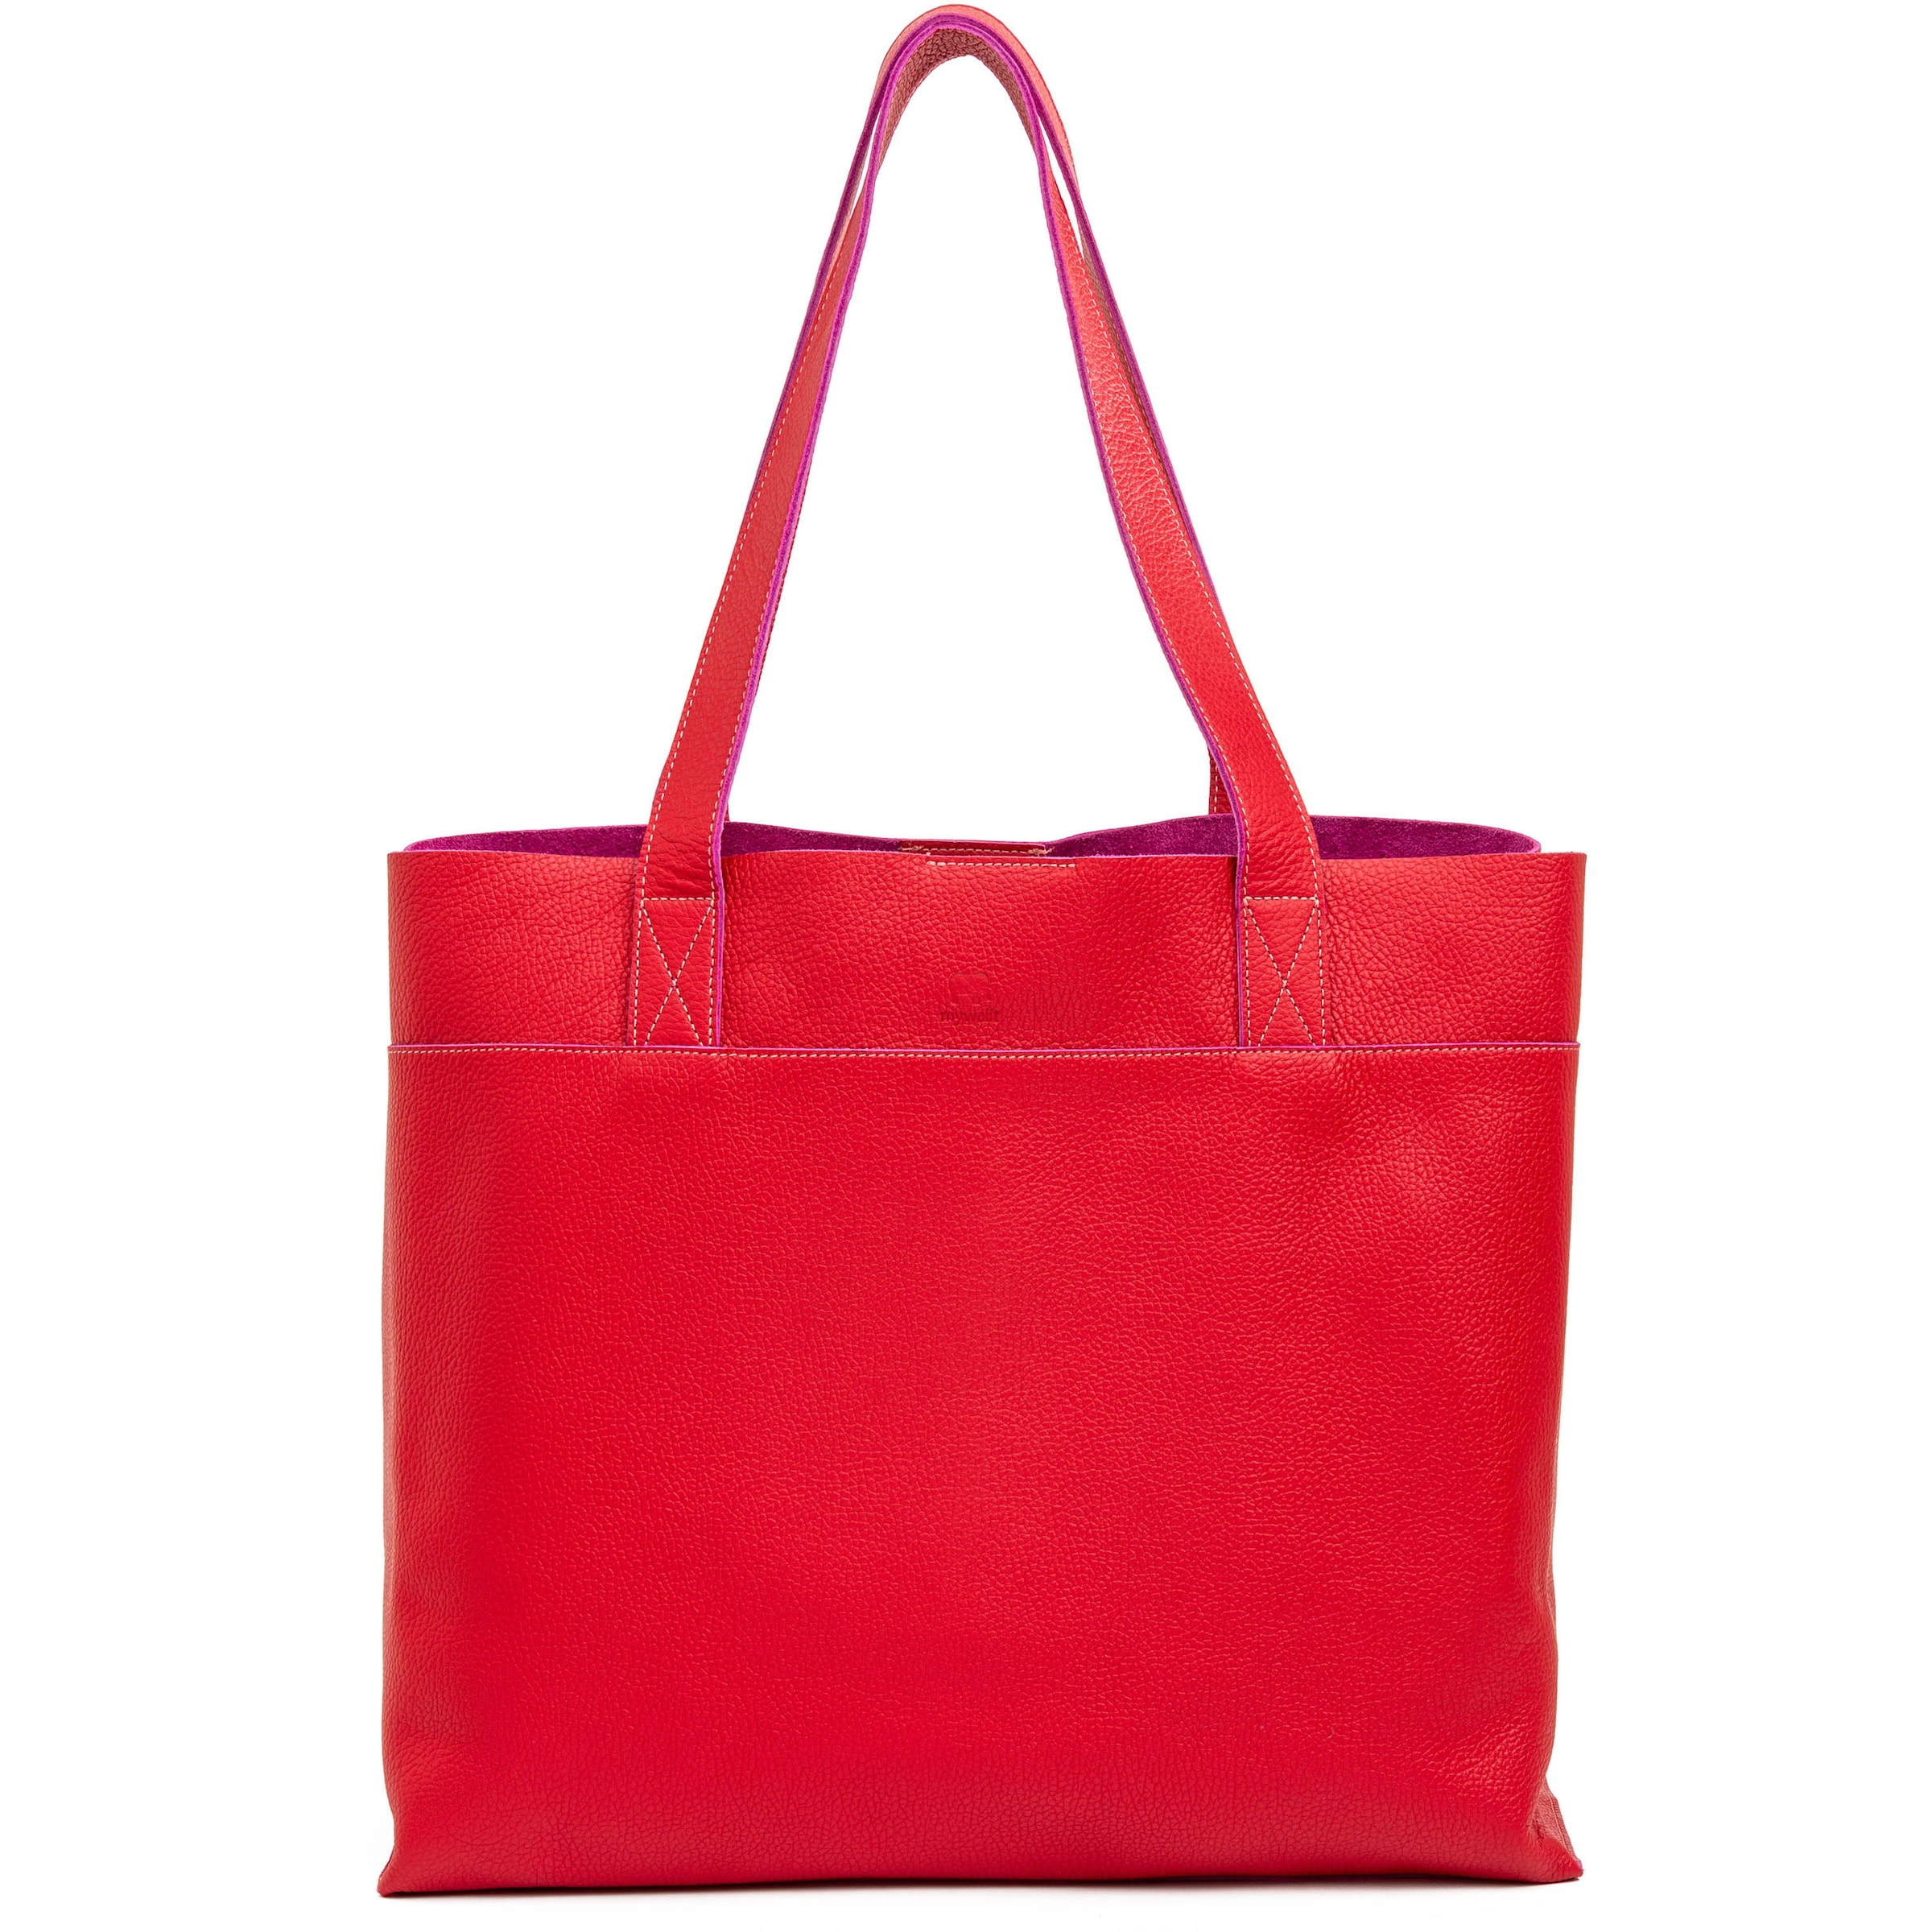 Mywalit Shopper Mywalit In Rot Mywalit In Shopper Rot Shopper 'vancouver' 'vancouver' O80wXPnk